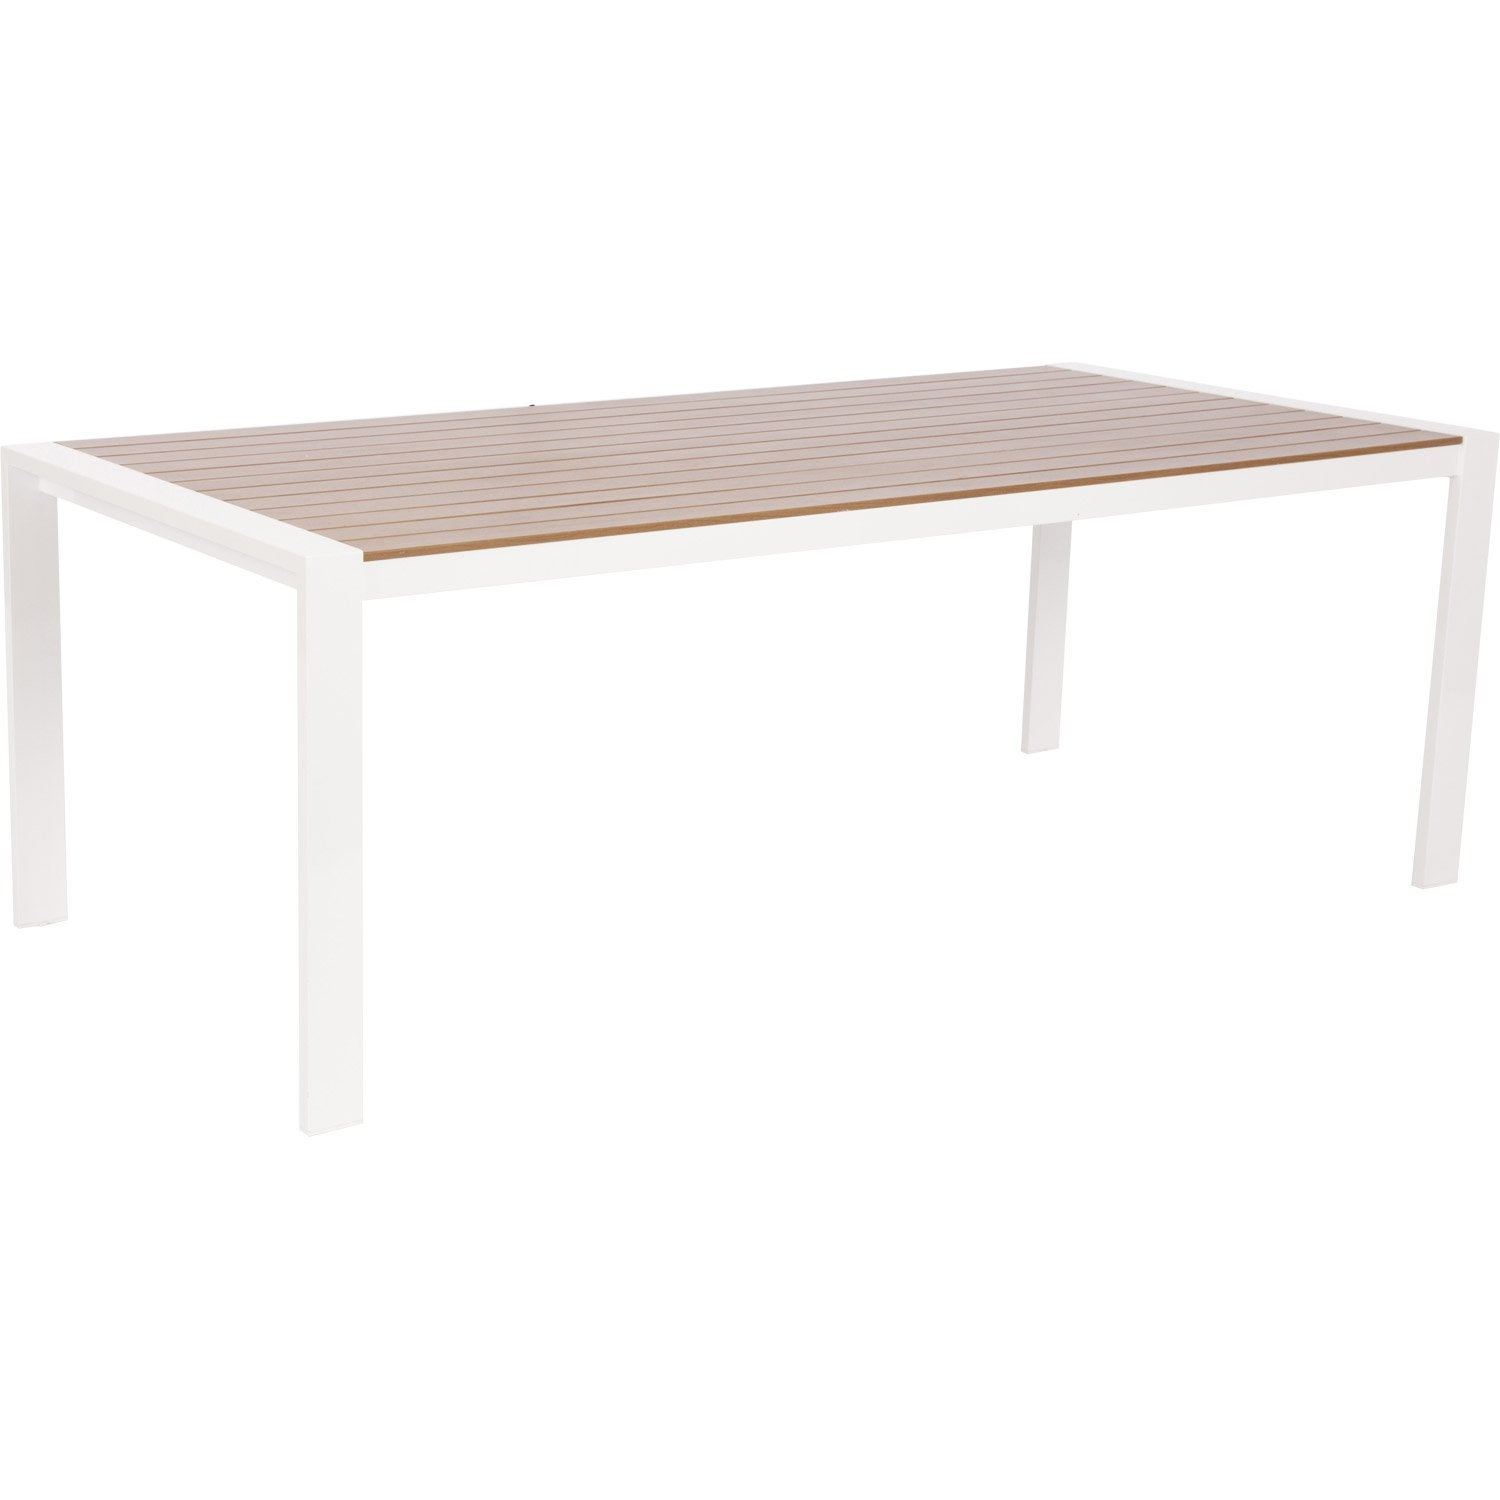 Table basse teck leroy merlin for Table de nuit leroy merlin